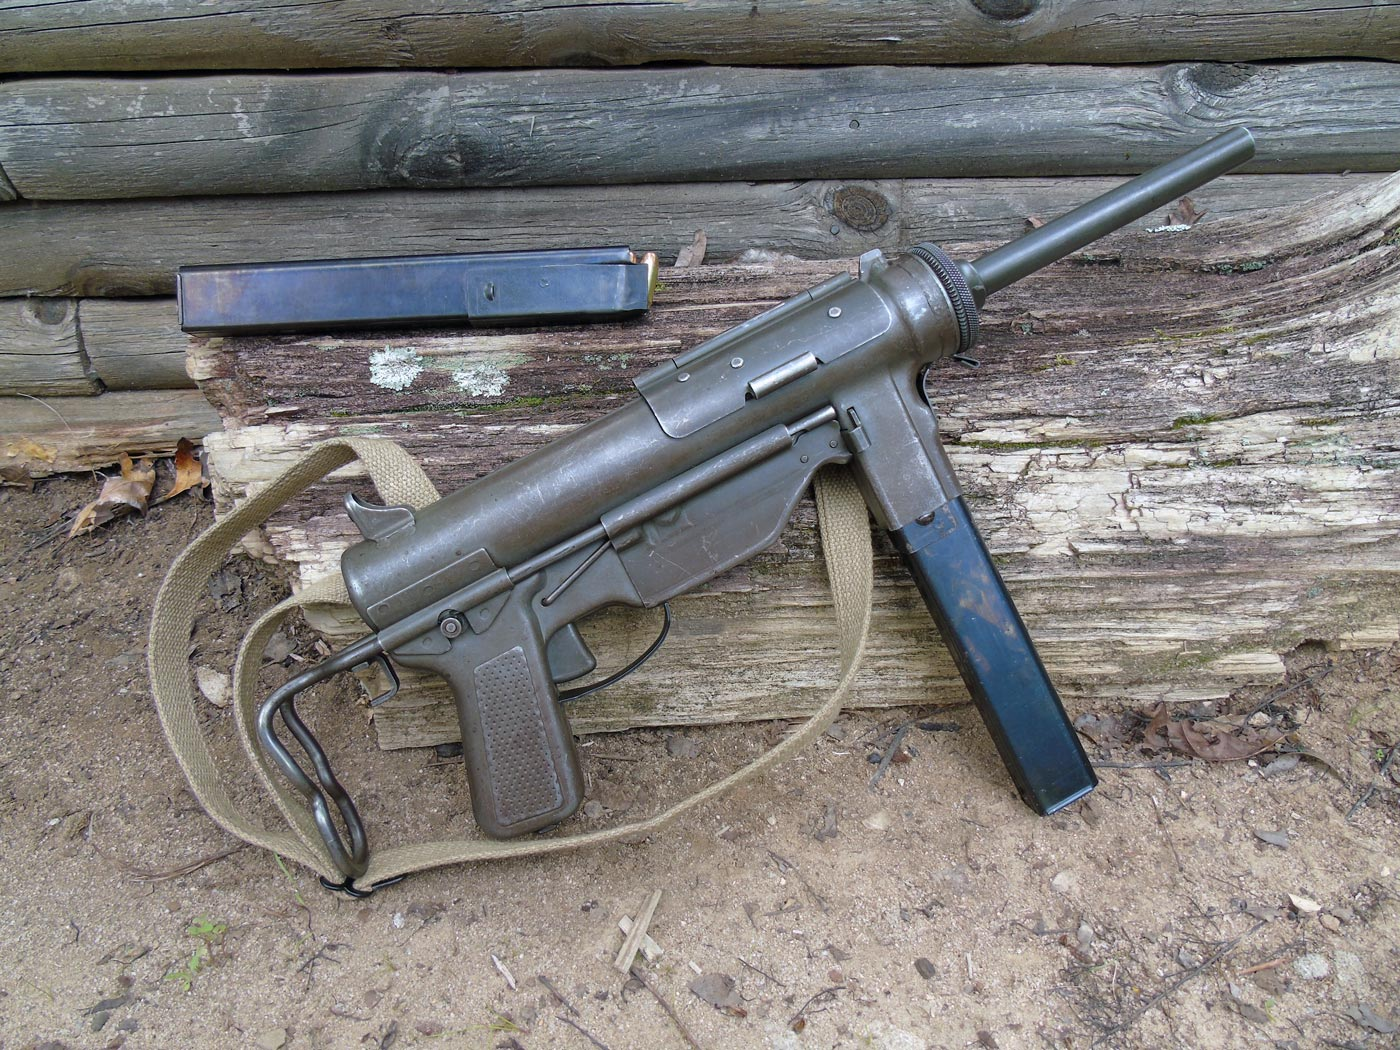 M3a1 grease gun